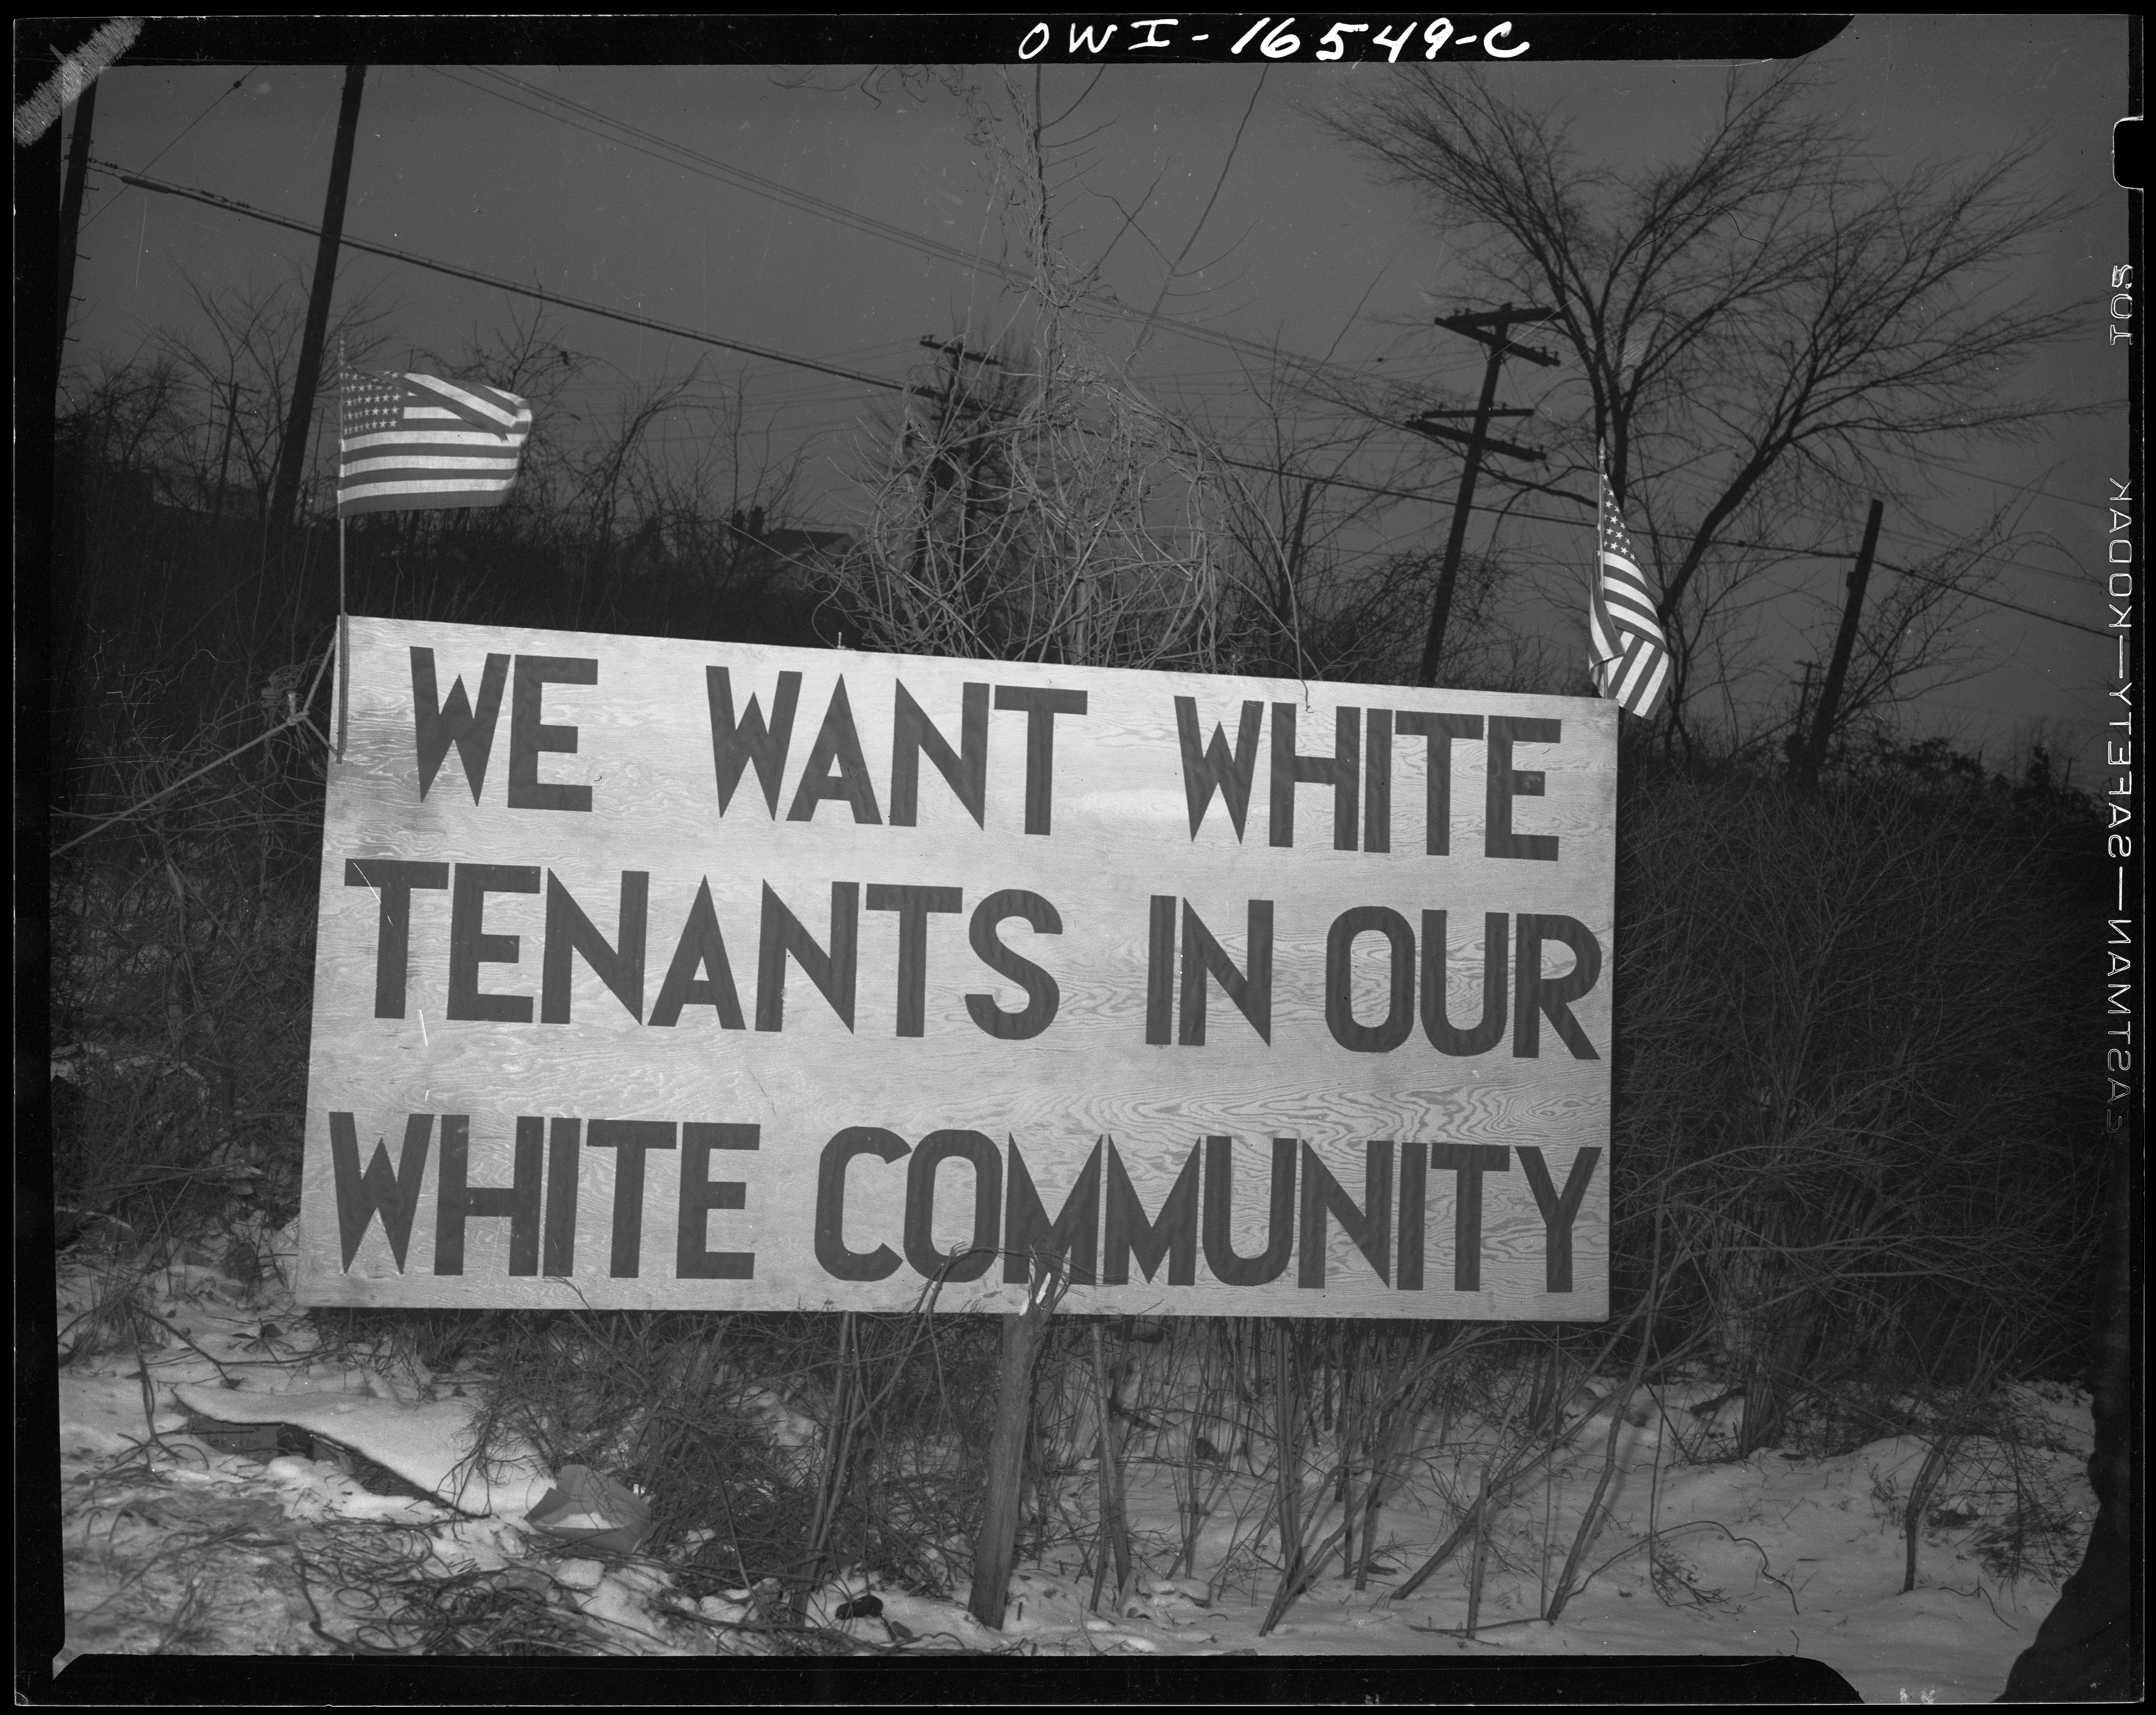 File:We want white tenants.jpg